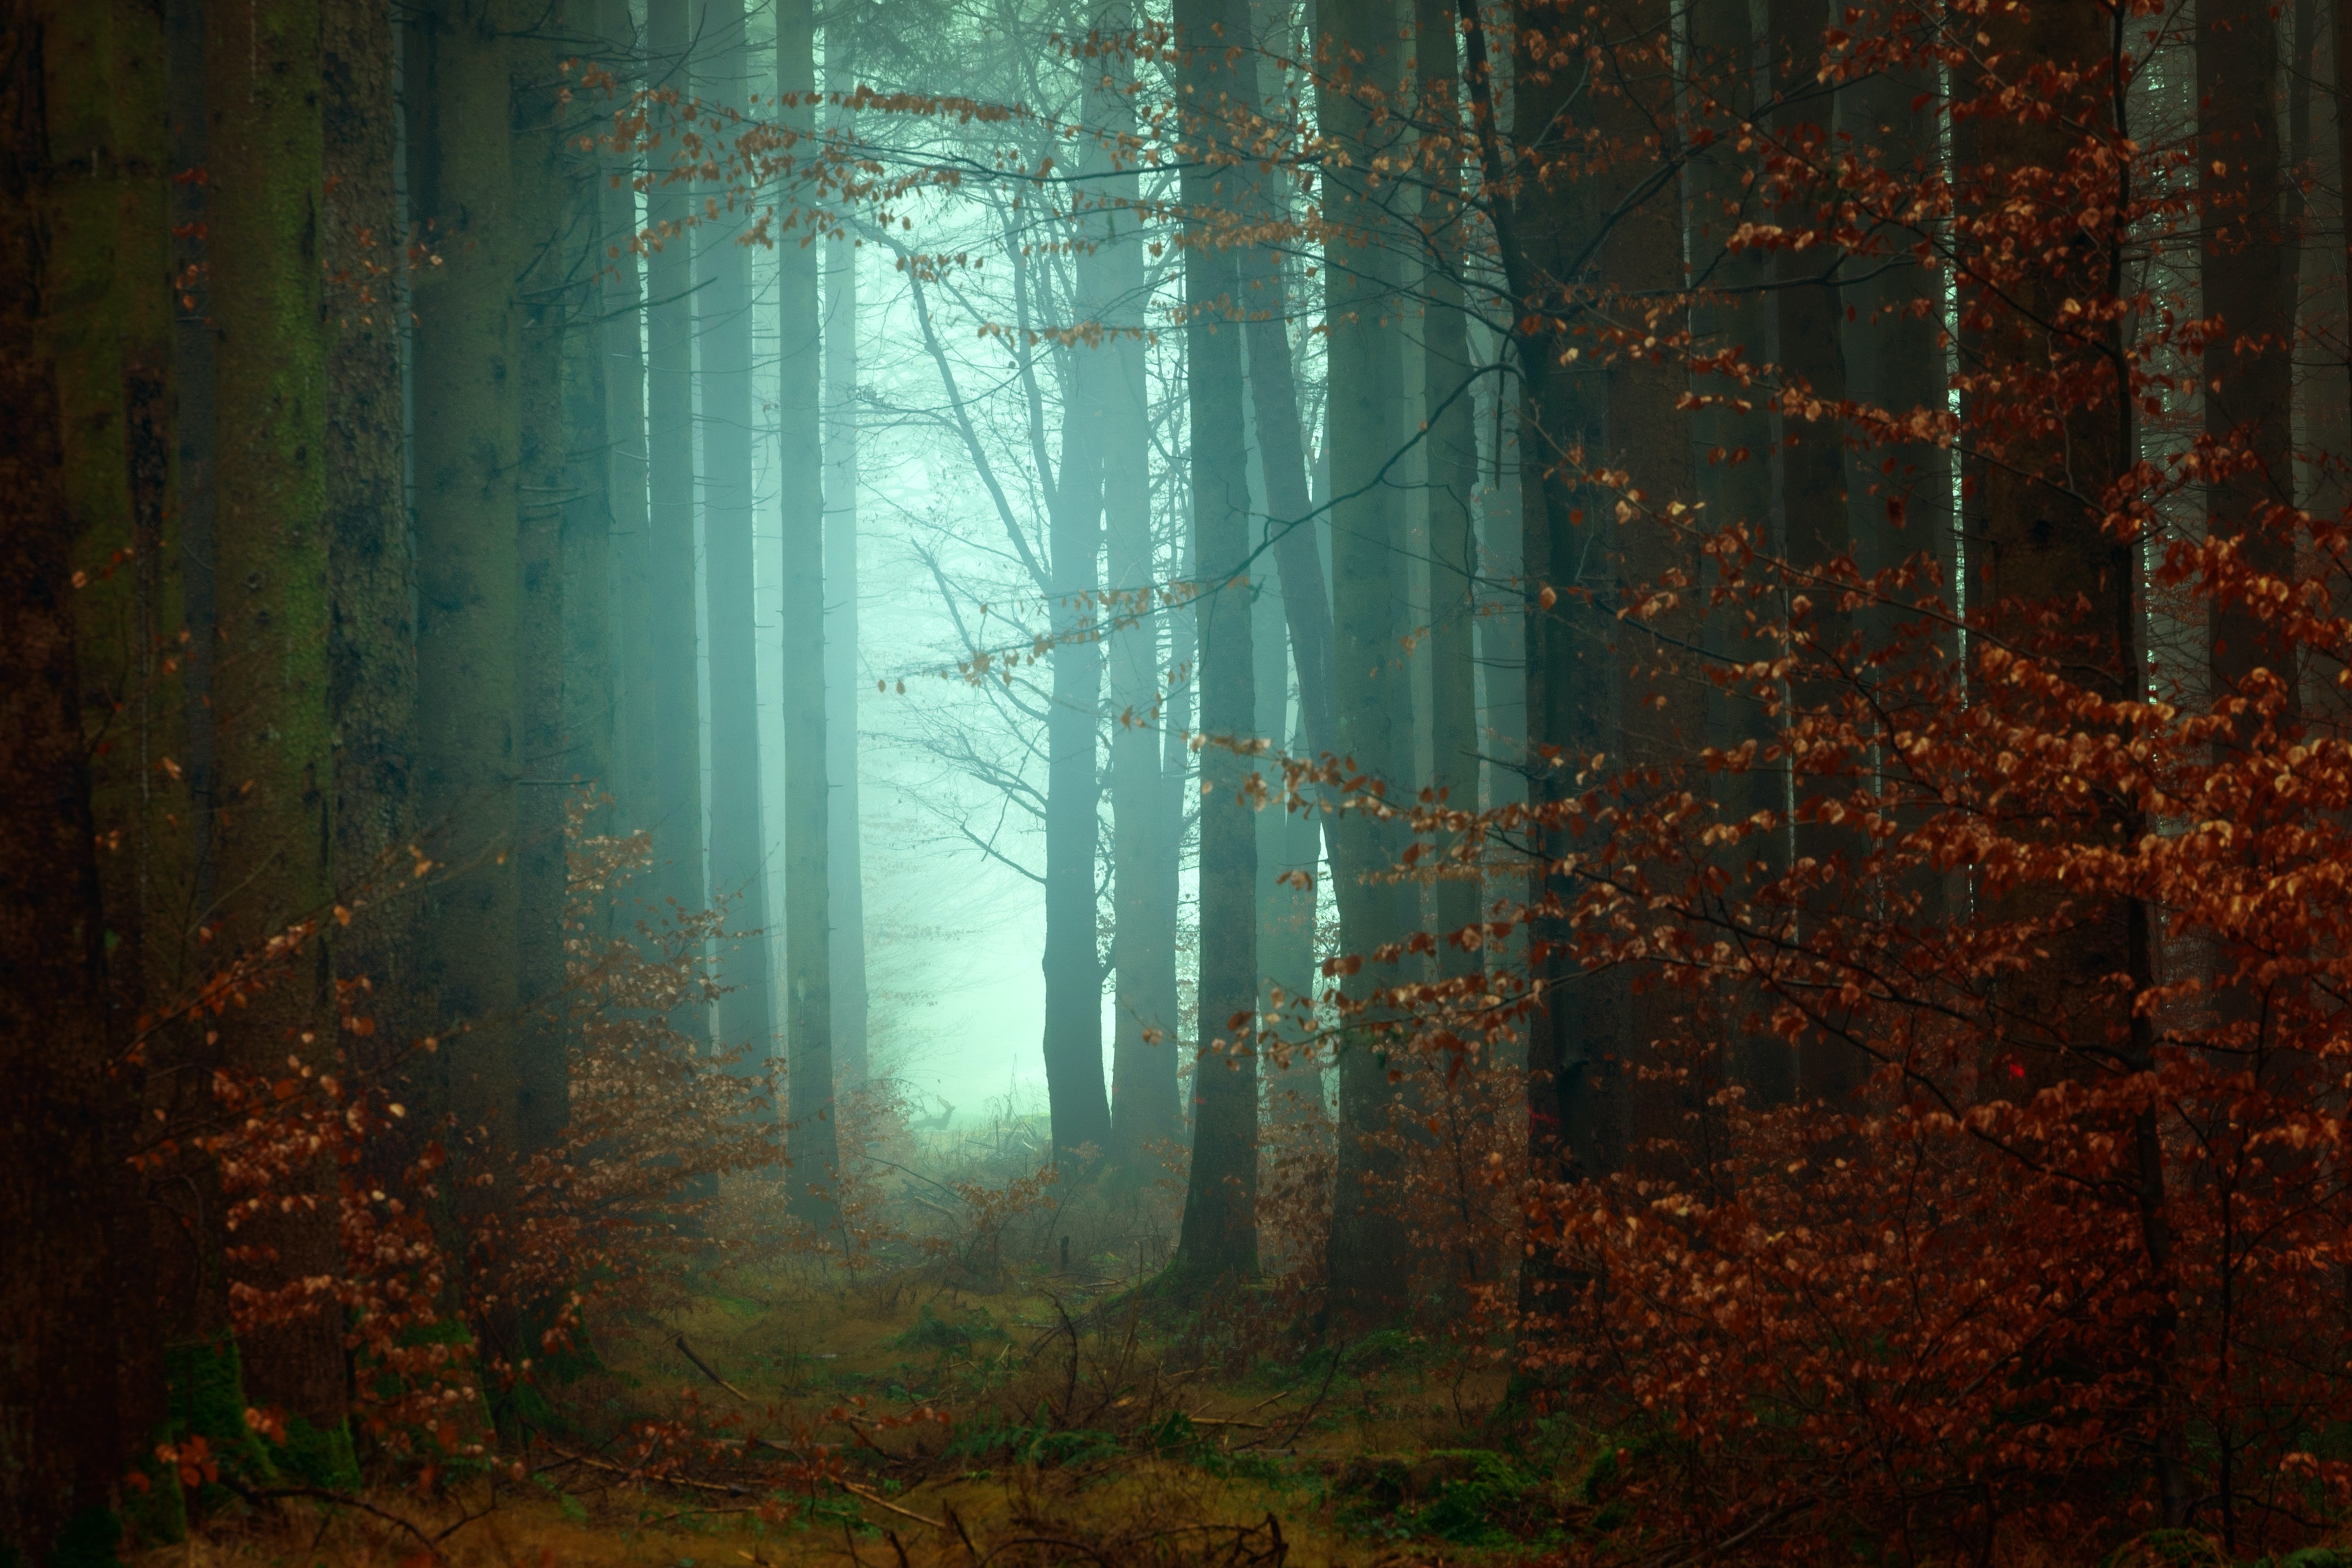 Removing your blockages like fog in a forest to read energies purely.